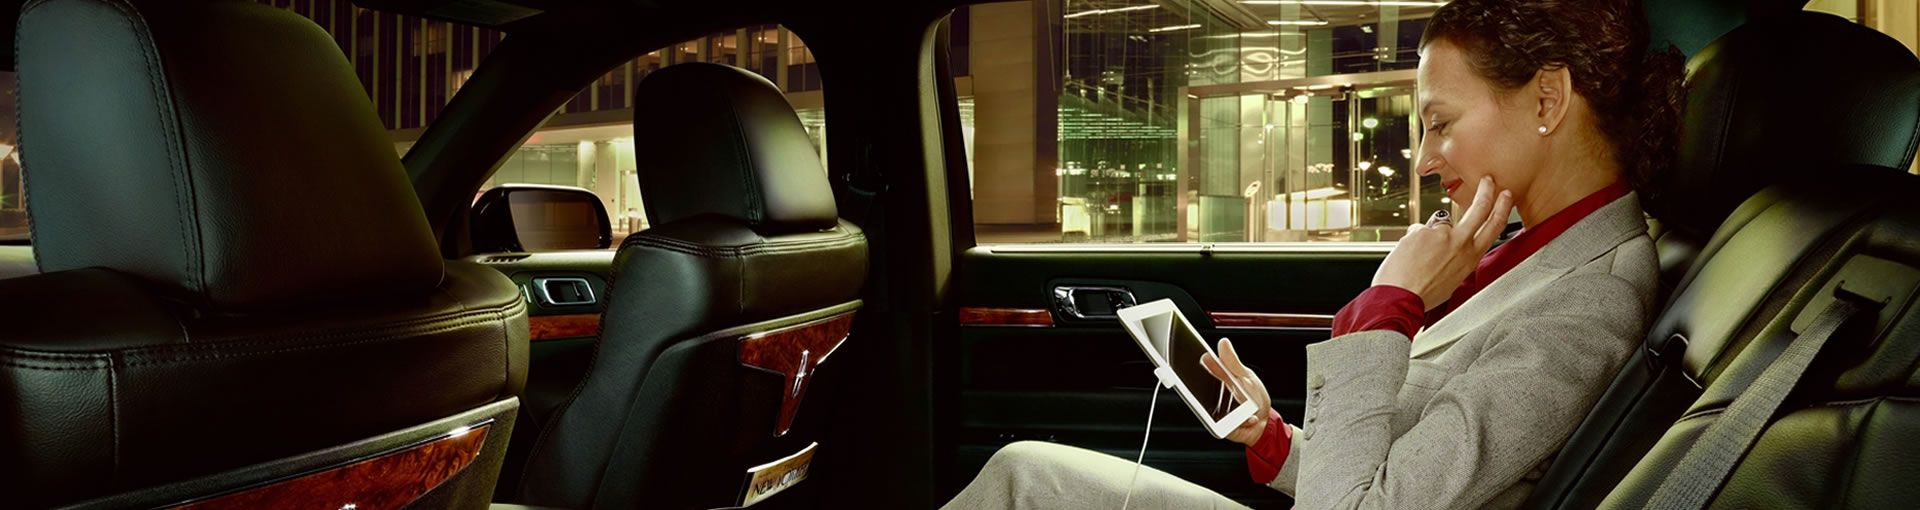 Executive Transportation Detroit Corporate Travel Services